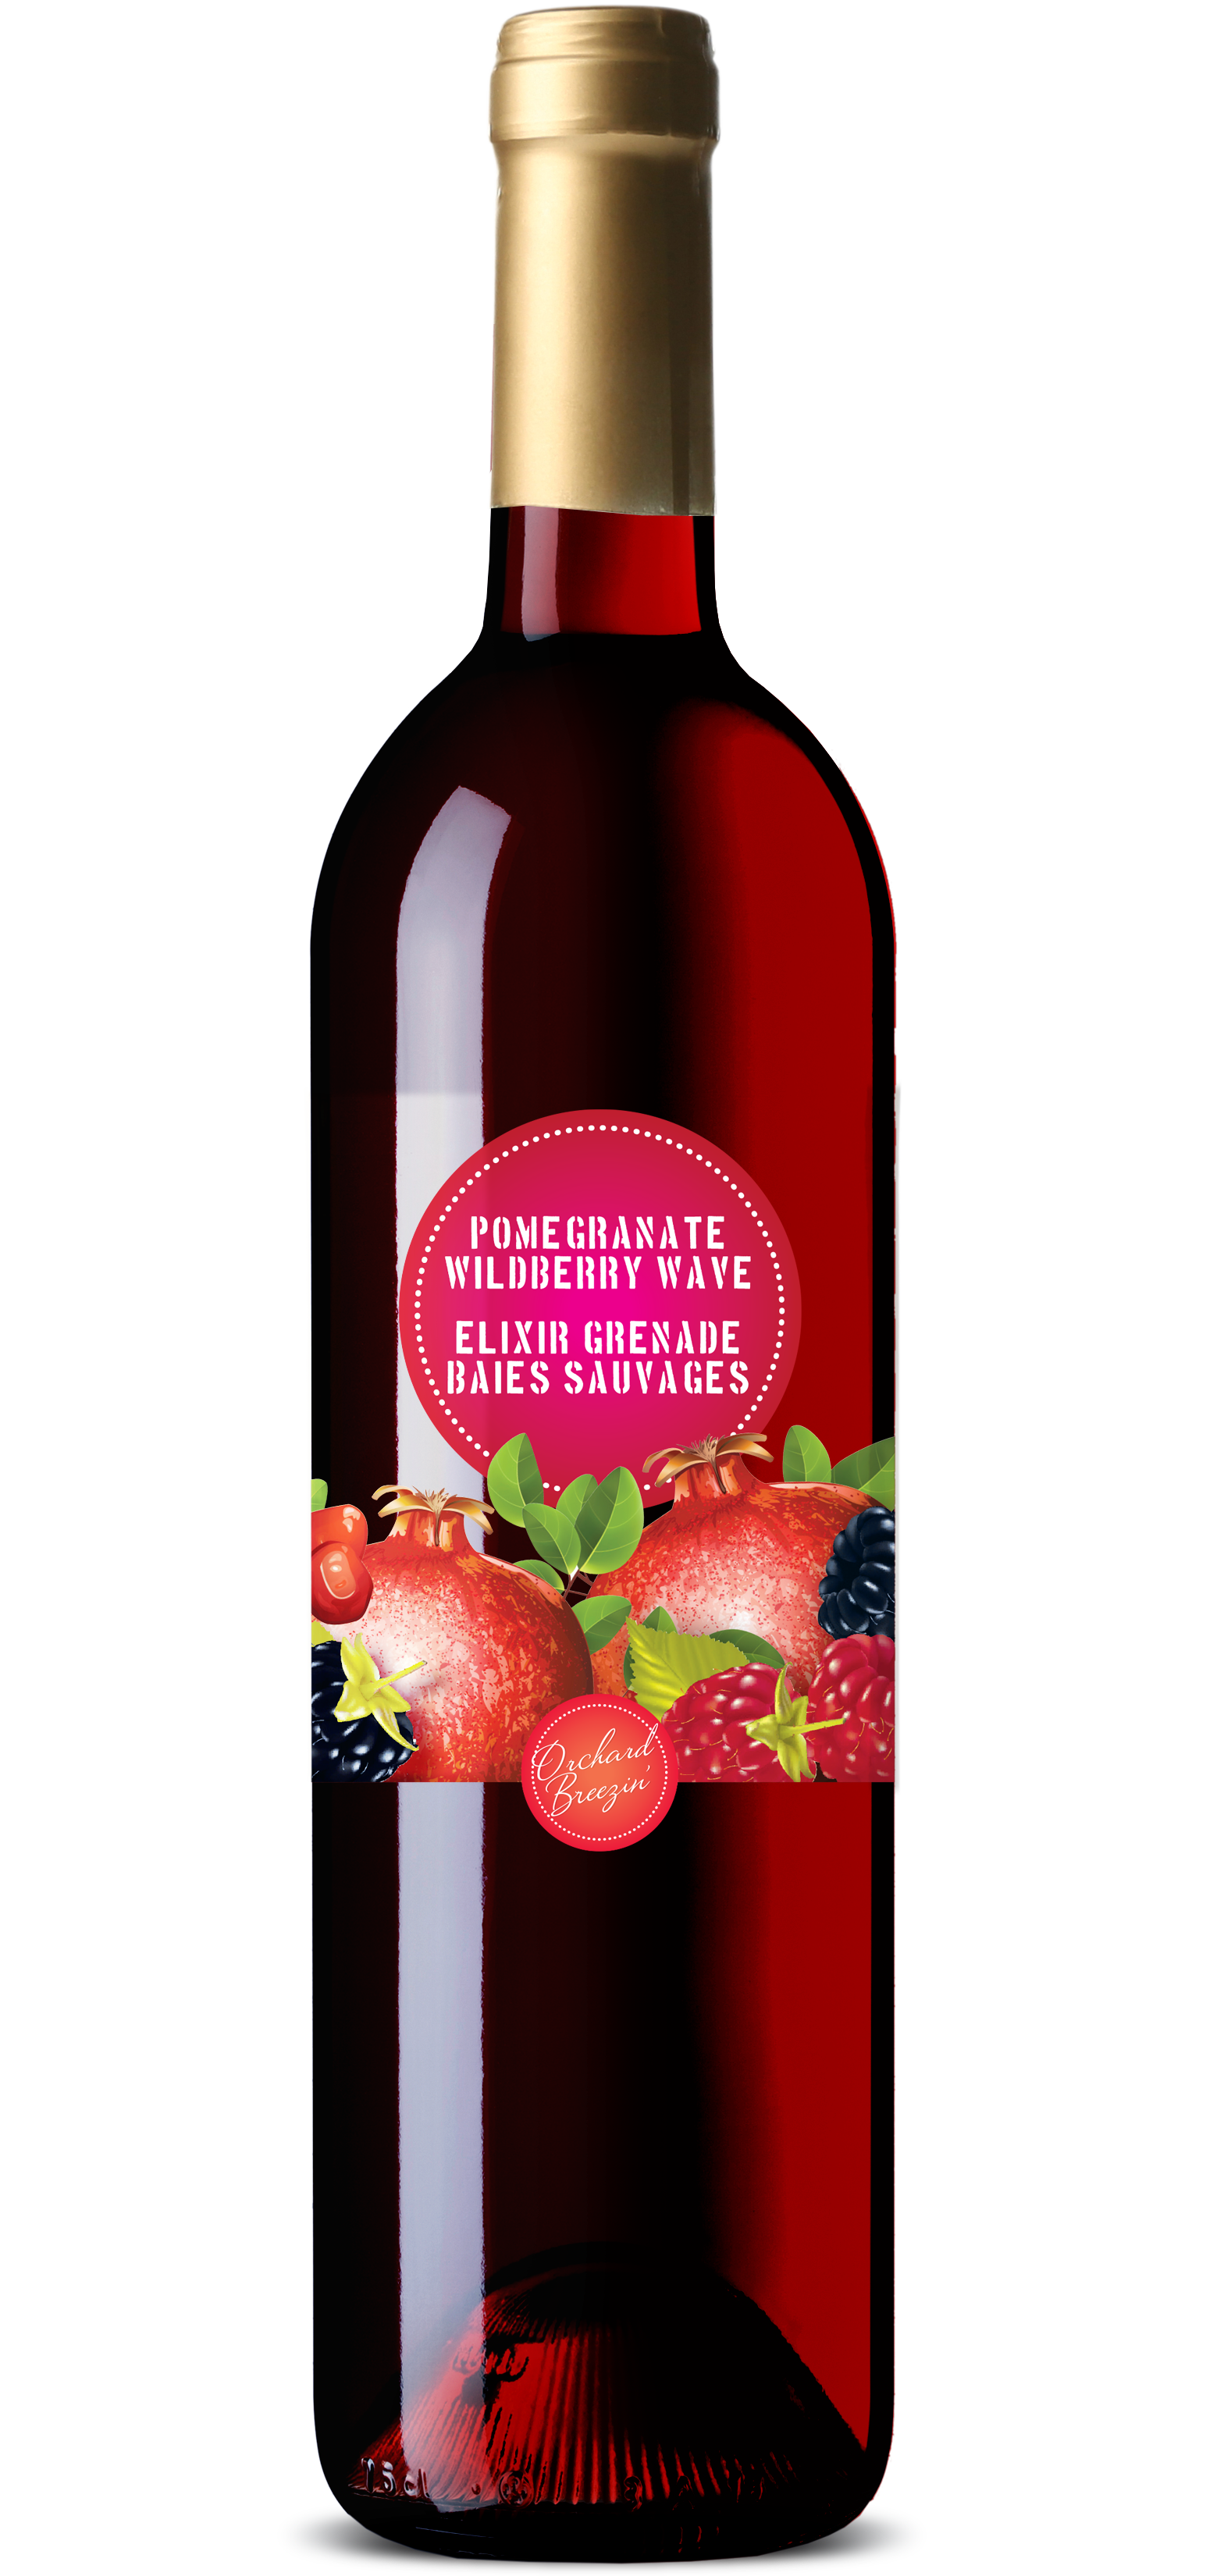 https://0901.nccdn.net/4_2/000/000/076/de9/OB_Bottle_Pomegrate-Wildberry-Wave.png